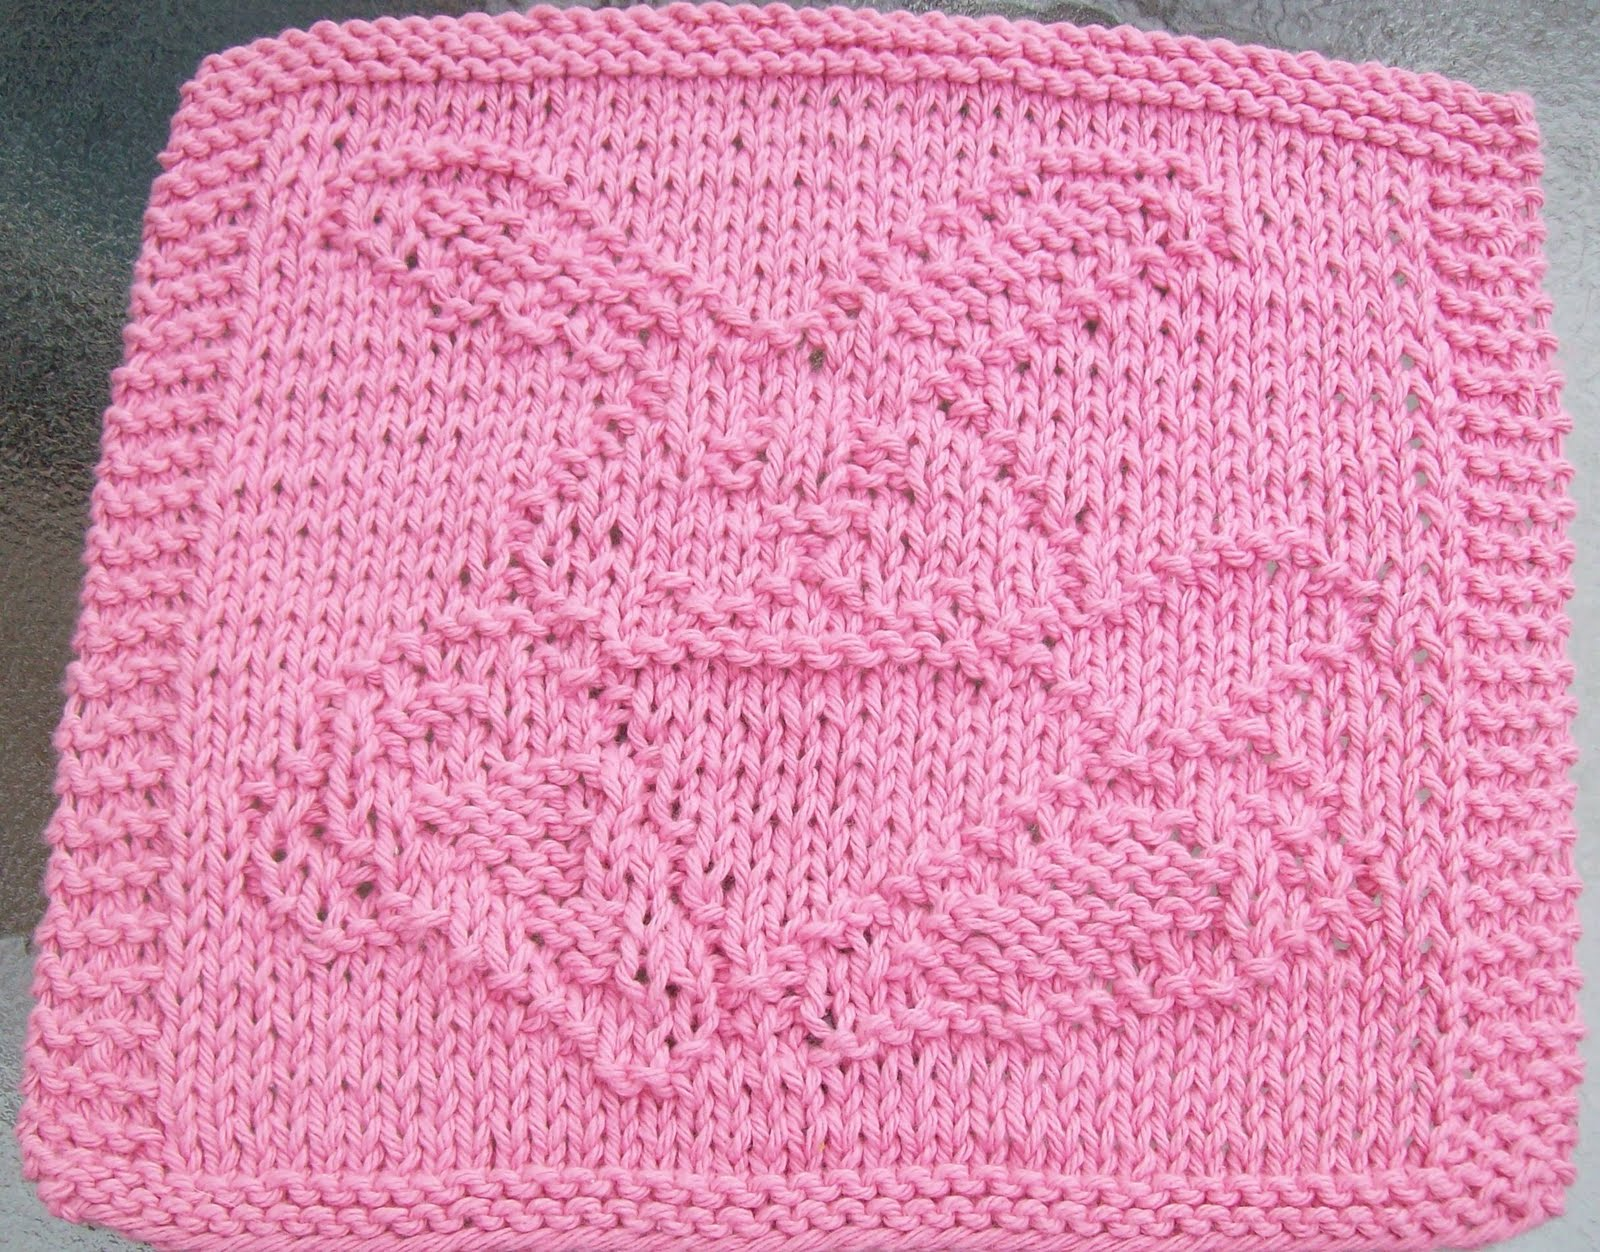 DigKnitty Designs: Waving Bunny Knit Dishcloth Pattern